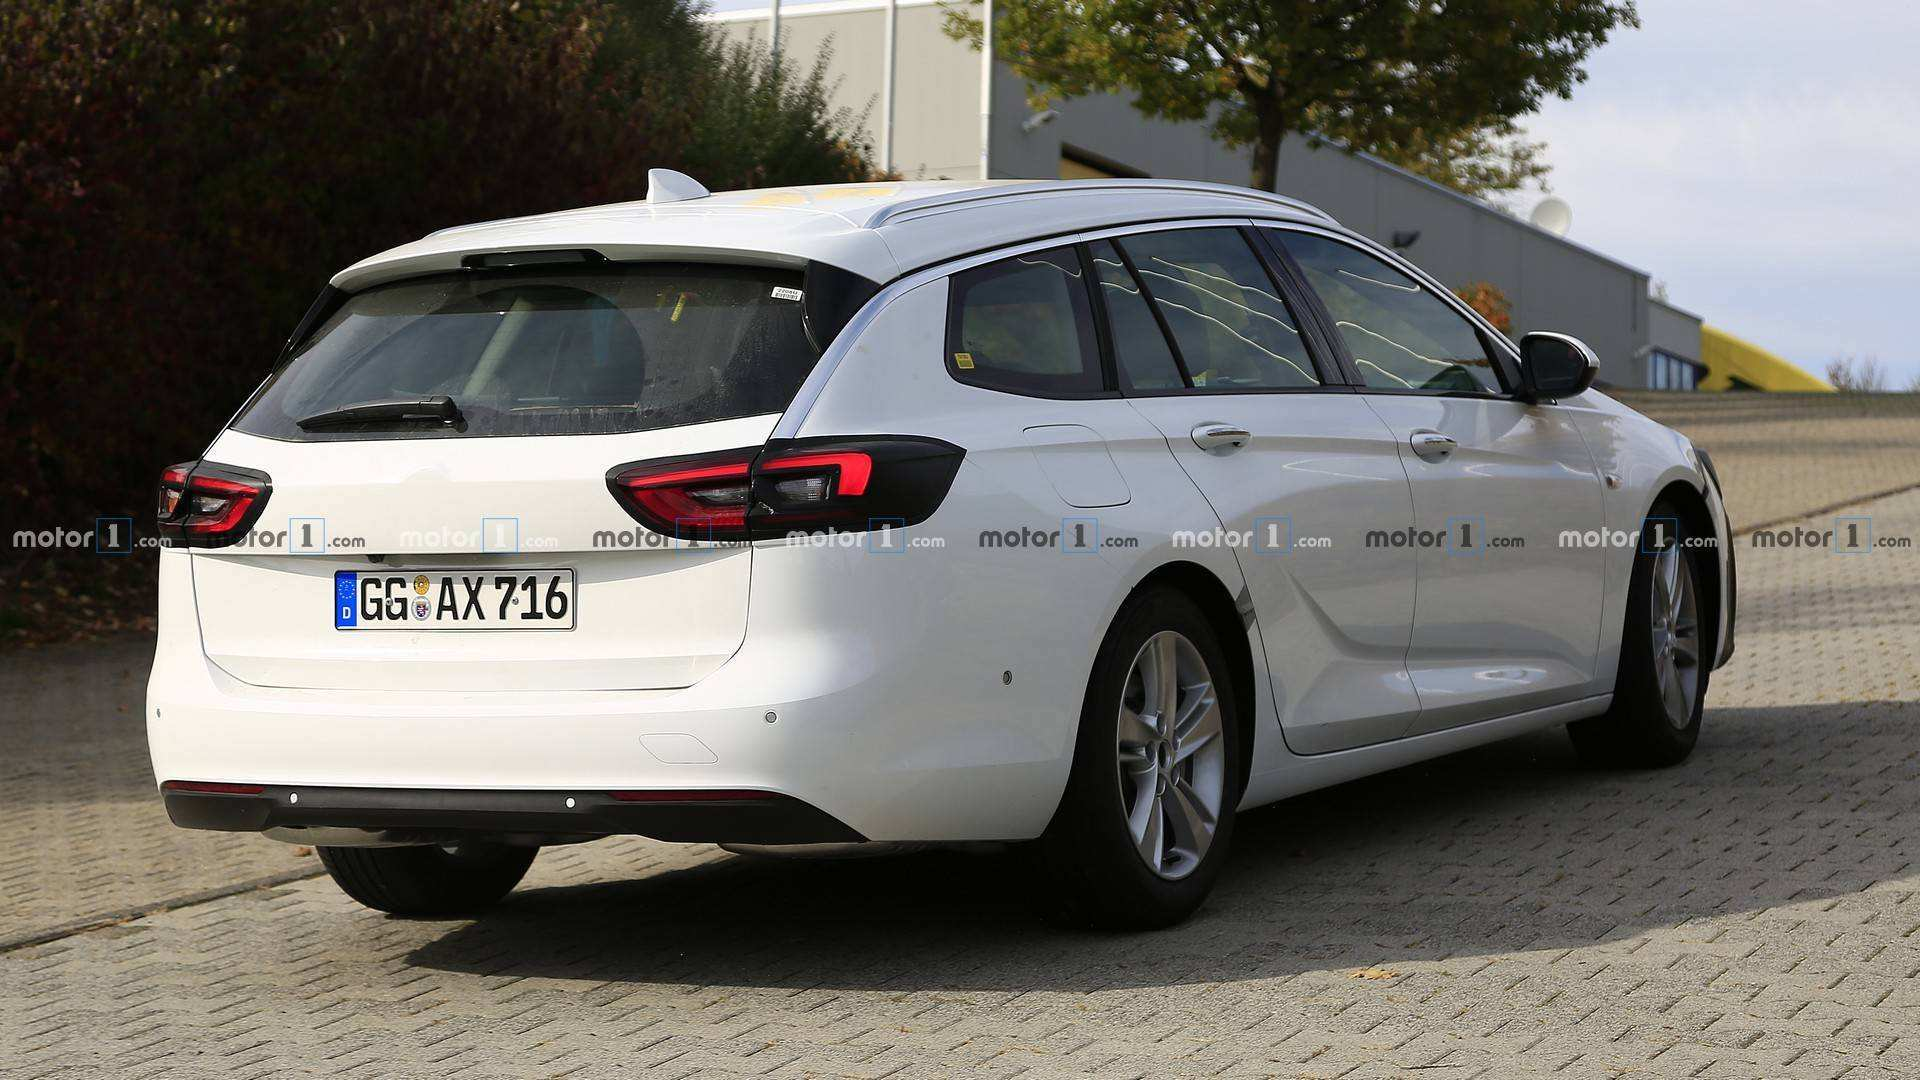 15 Gallery of New Opel Insignia 2020 Prices by New Opel Insignia 2020